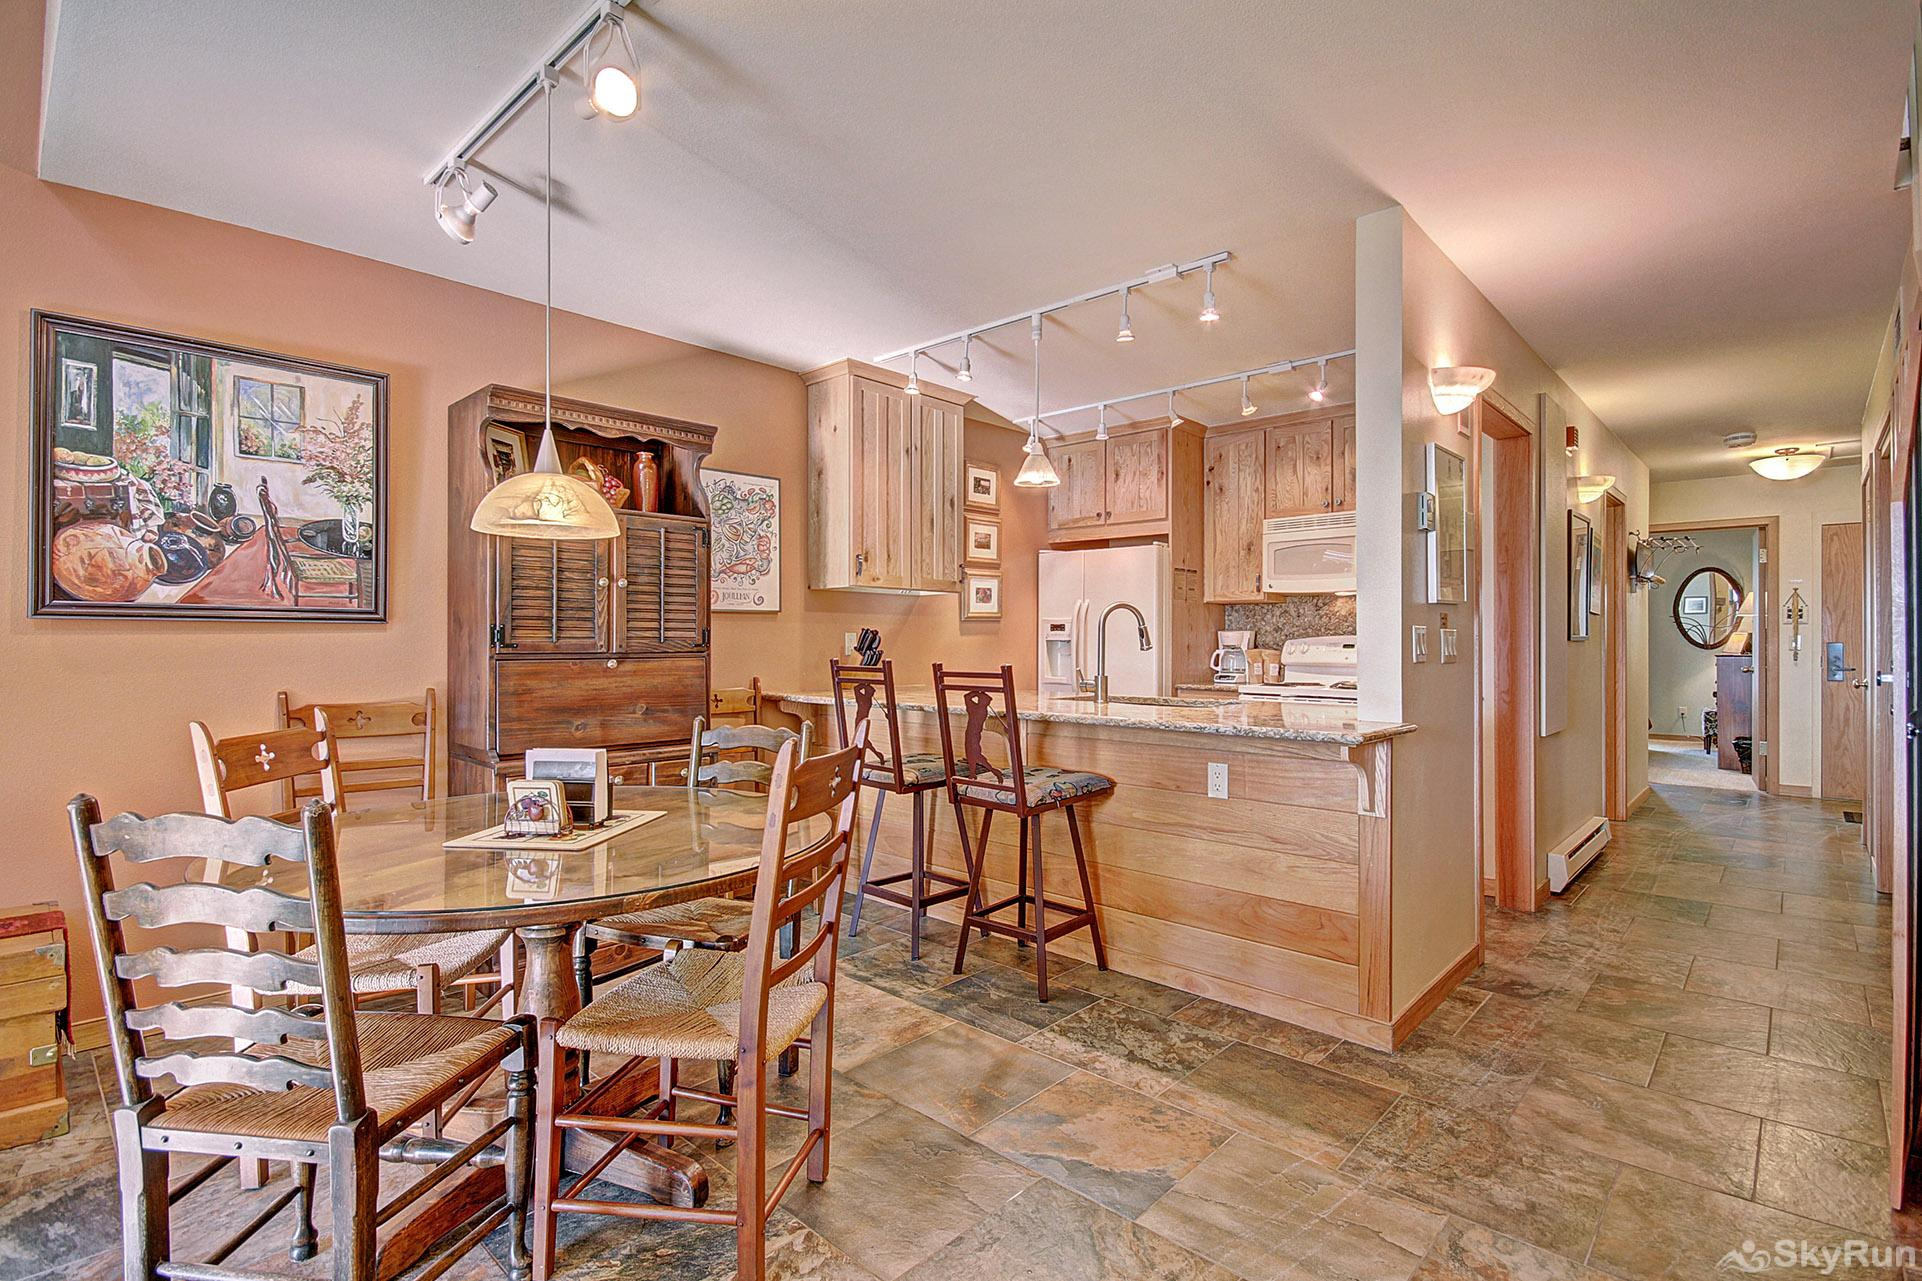 413 Ski Run Dining Room and Kitchen